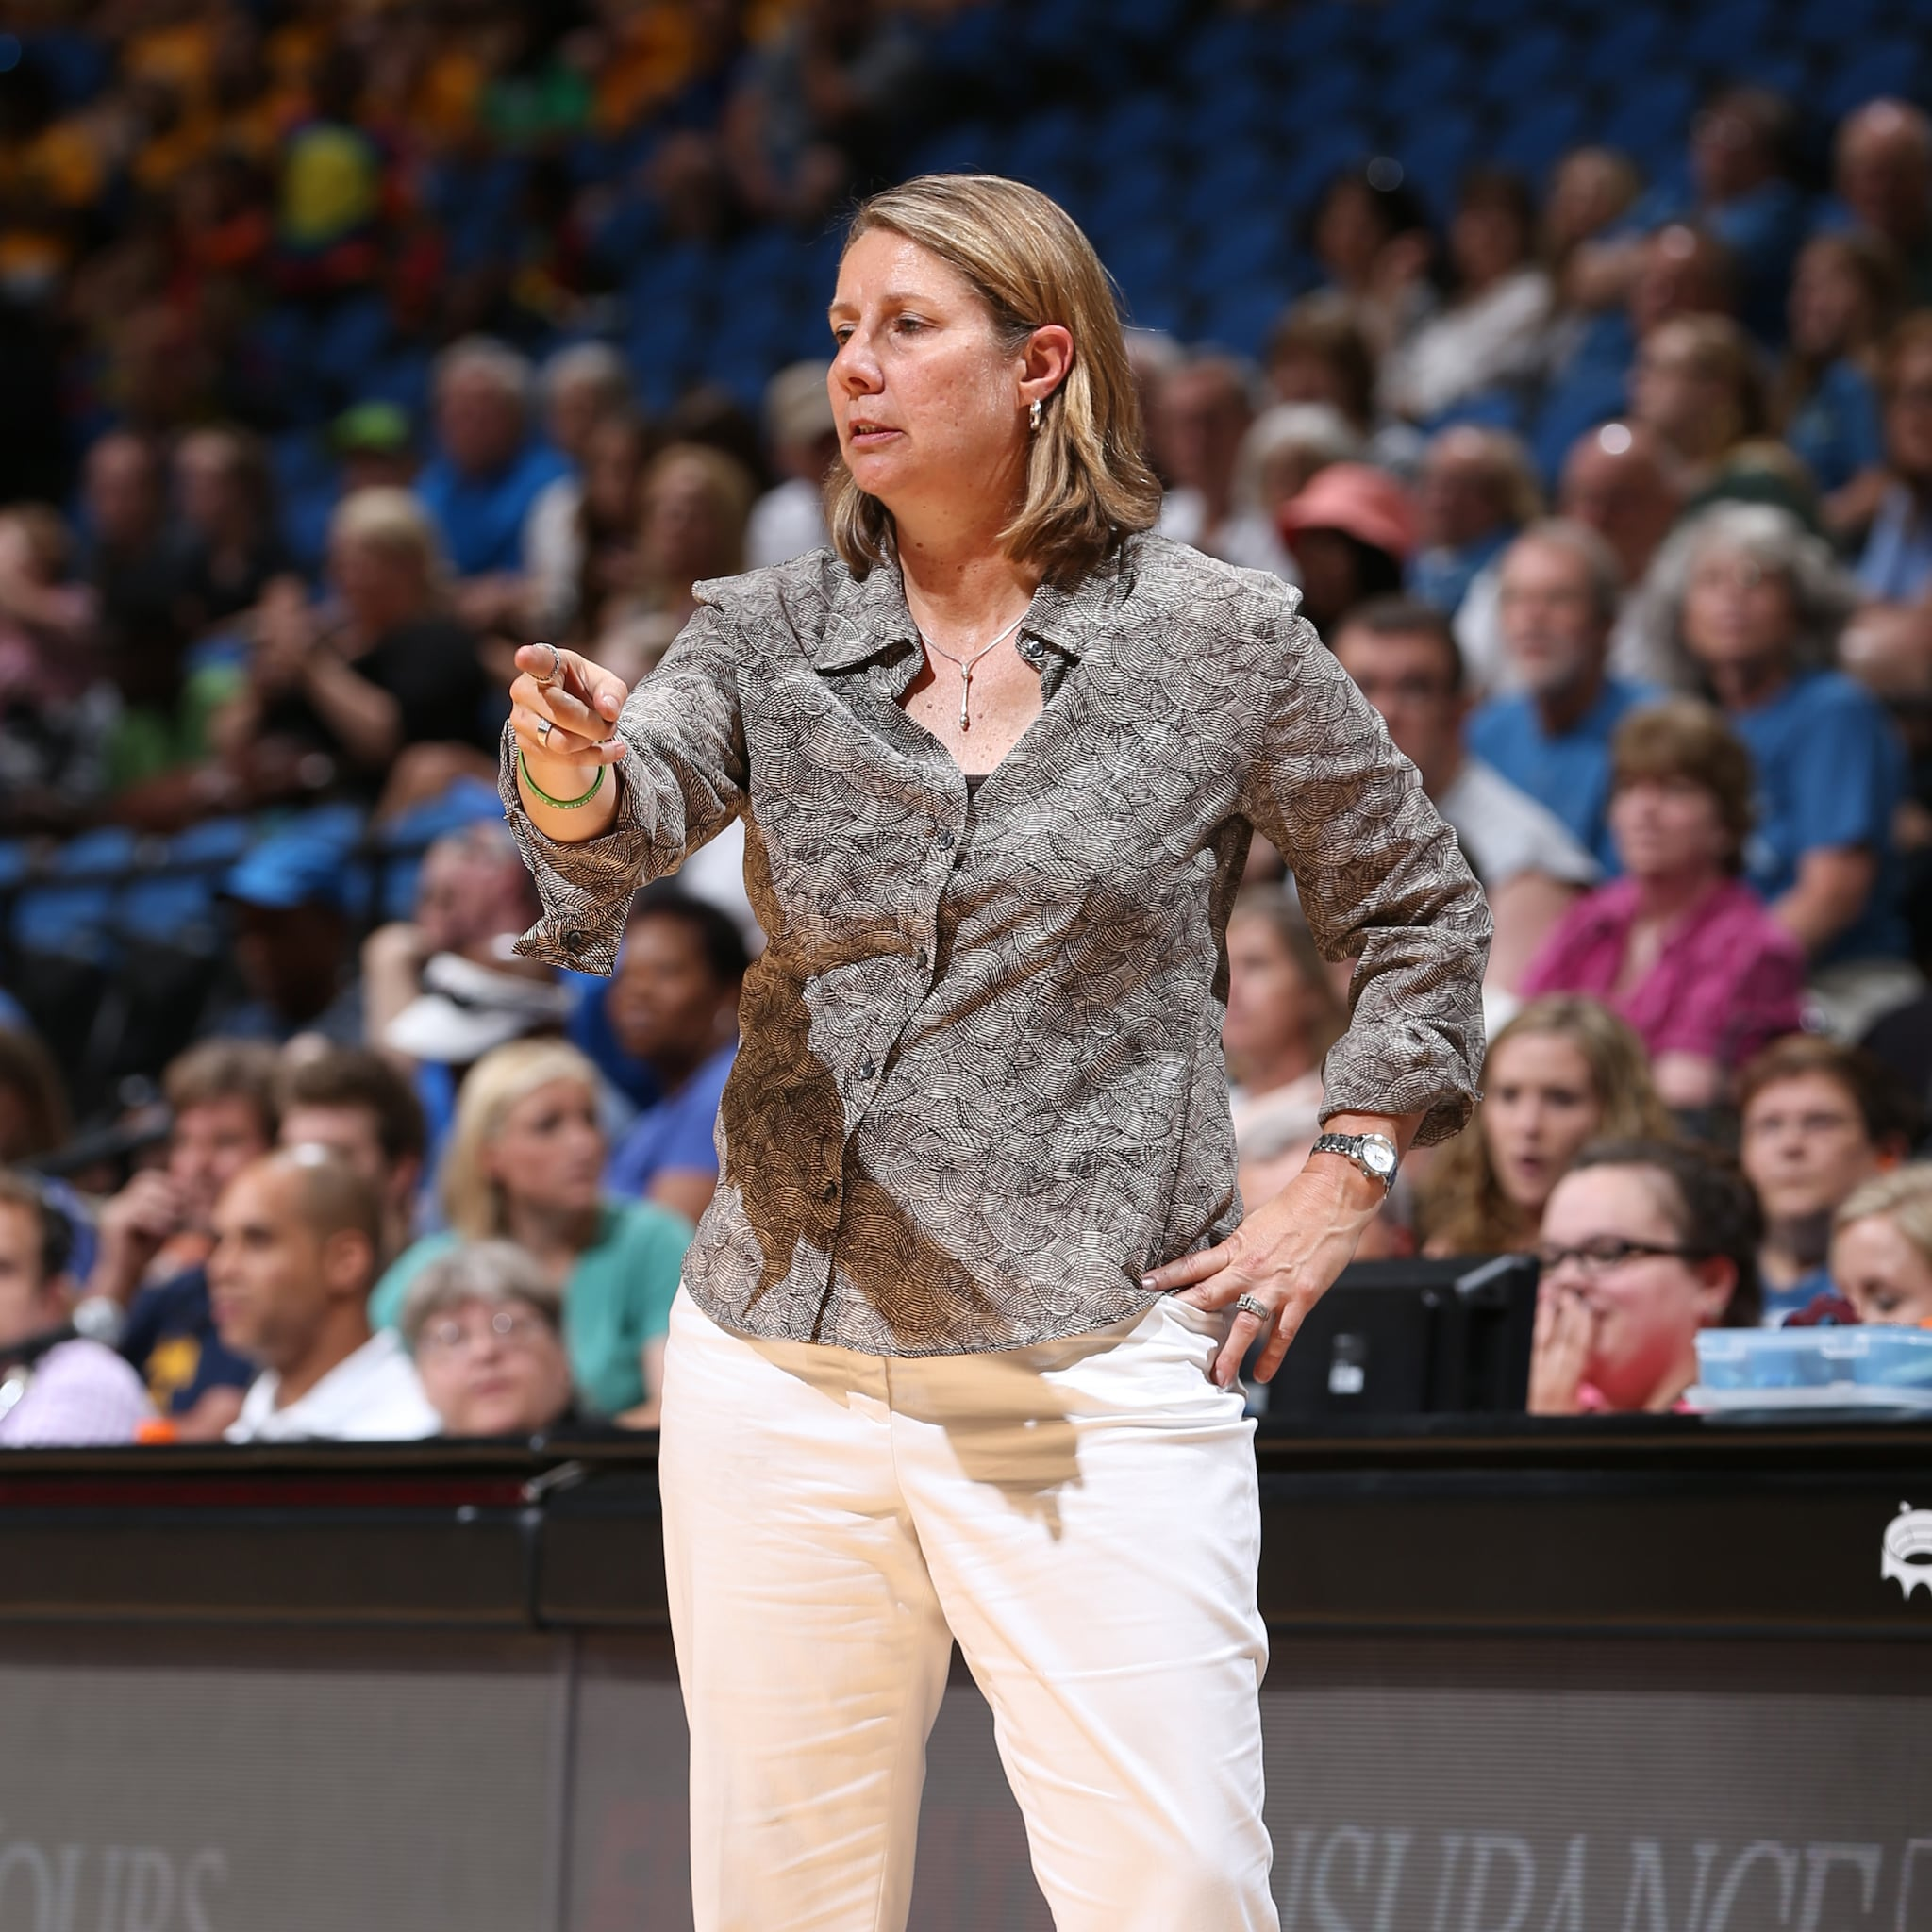 MINNEAPOLIS, MN - JULY 22: Cheryl Reeve of the Minnesota Lynx stands on the court during a game against the Connecticut Sun on July 22, 2015 at Target Center in Minneapolis, Minnesota. NOTE TO USER: User expressly acknowledges and agrees that, by downloading and or using this Photograph, user is consenting to the terms and conditions of the Getty Images License Agreement. Mandatory Copyright Notice: Copyright 2015 NBAE (Photo by David Sherman/NBAE via Getty Images)